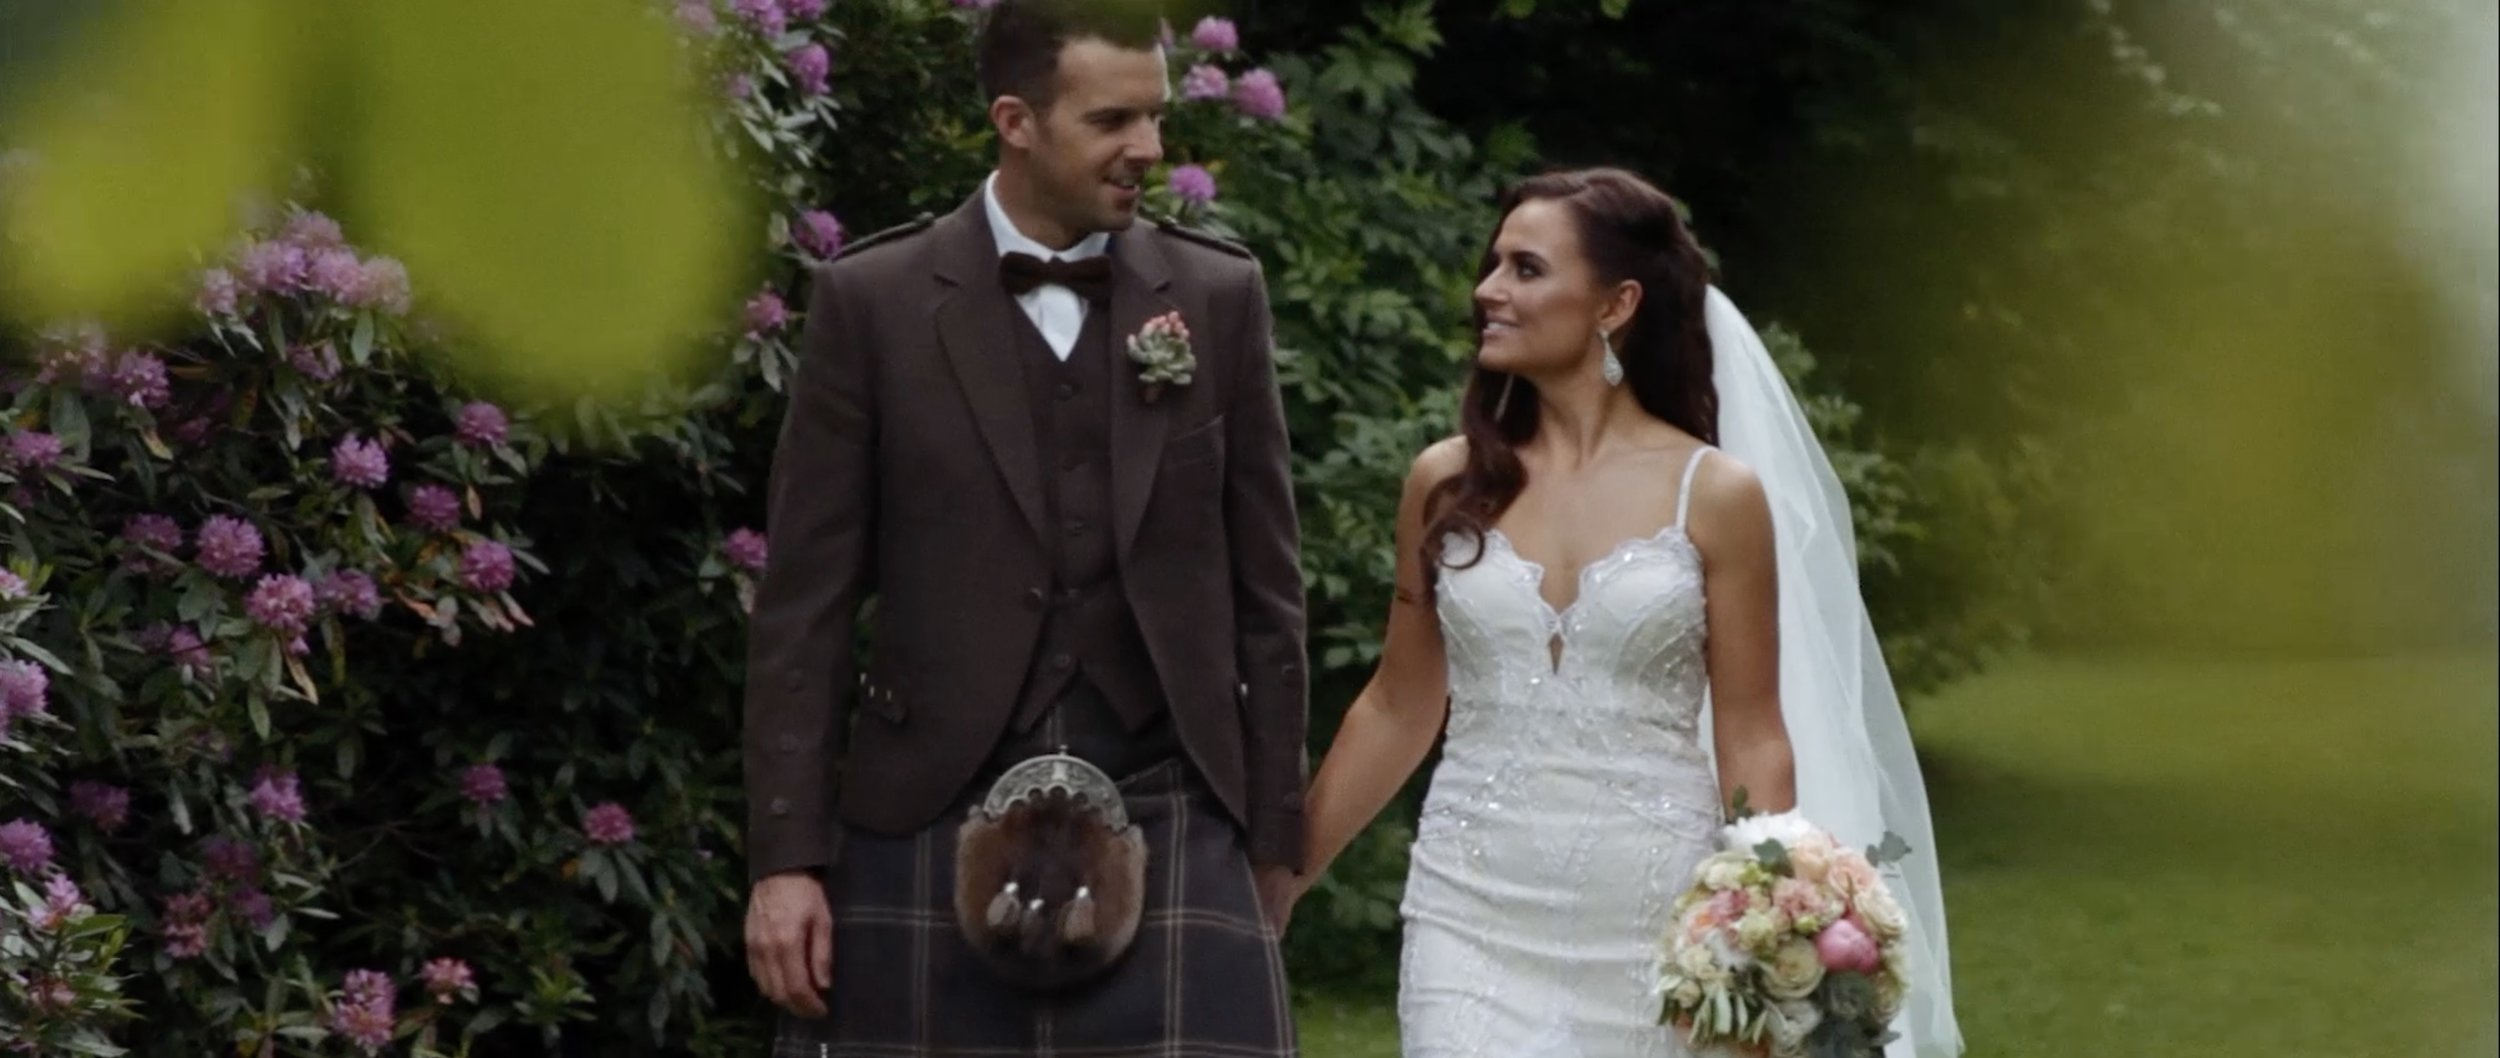 ayrshire-wedding-videographer_LL_06.jpg